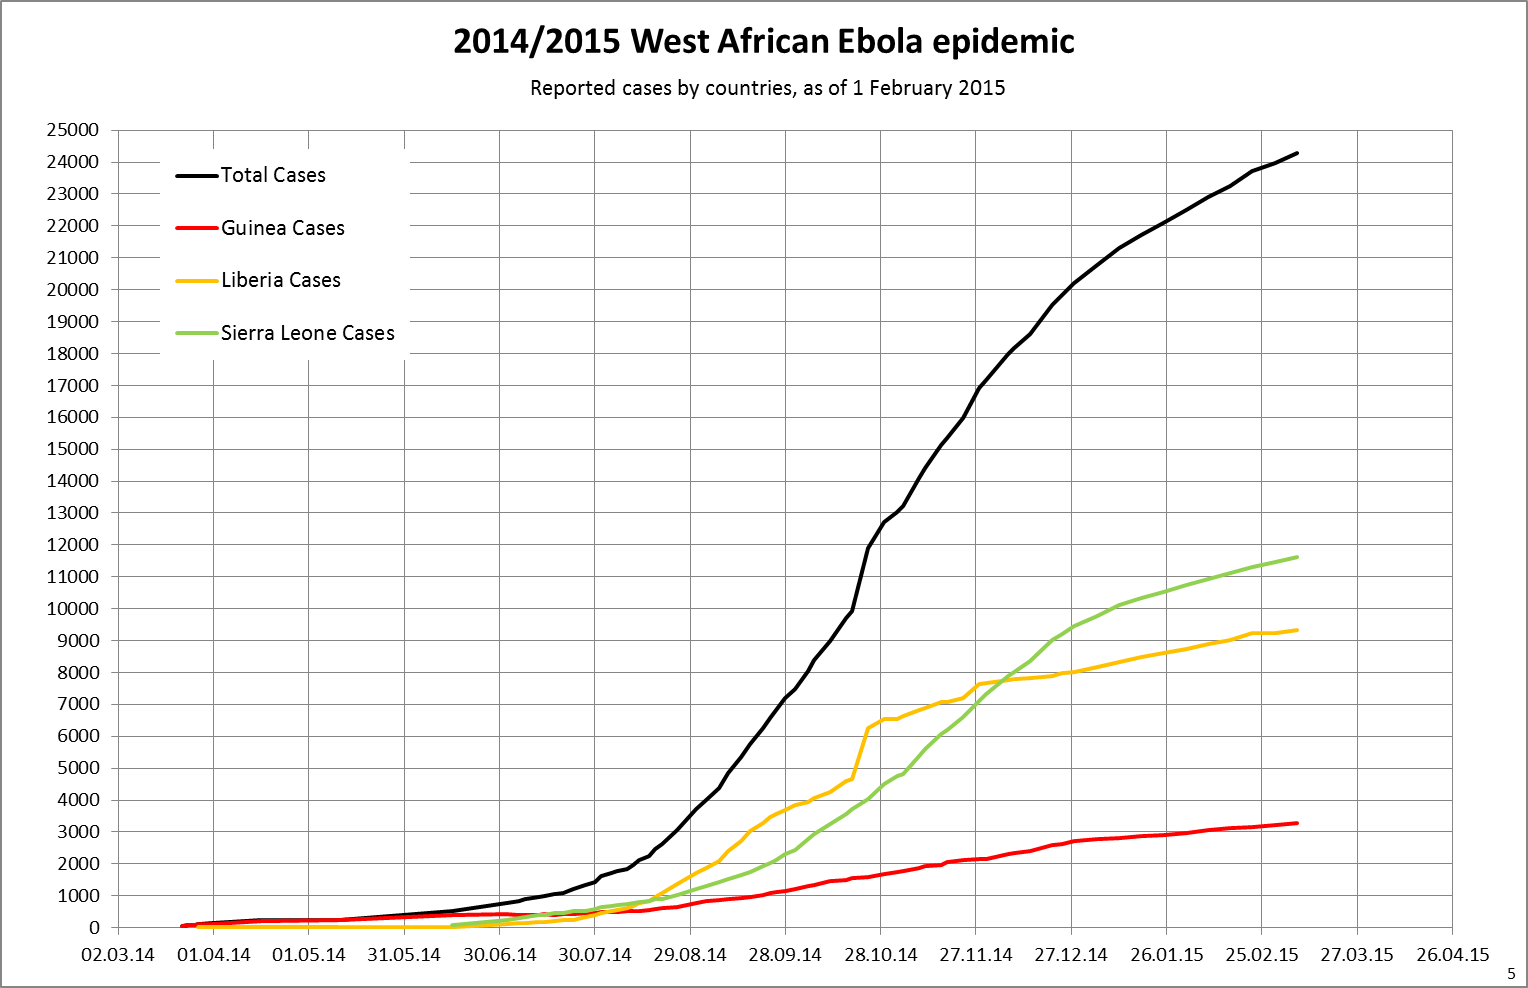 https://i1.wp.com/upload.wikimedia.org/wikipedia/commons/a/a9/West_Africa_Ebola_2014_5_cum_case_by_country_lin.png